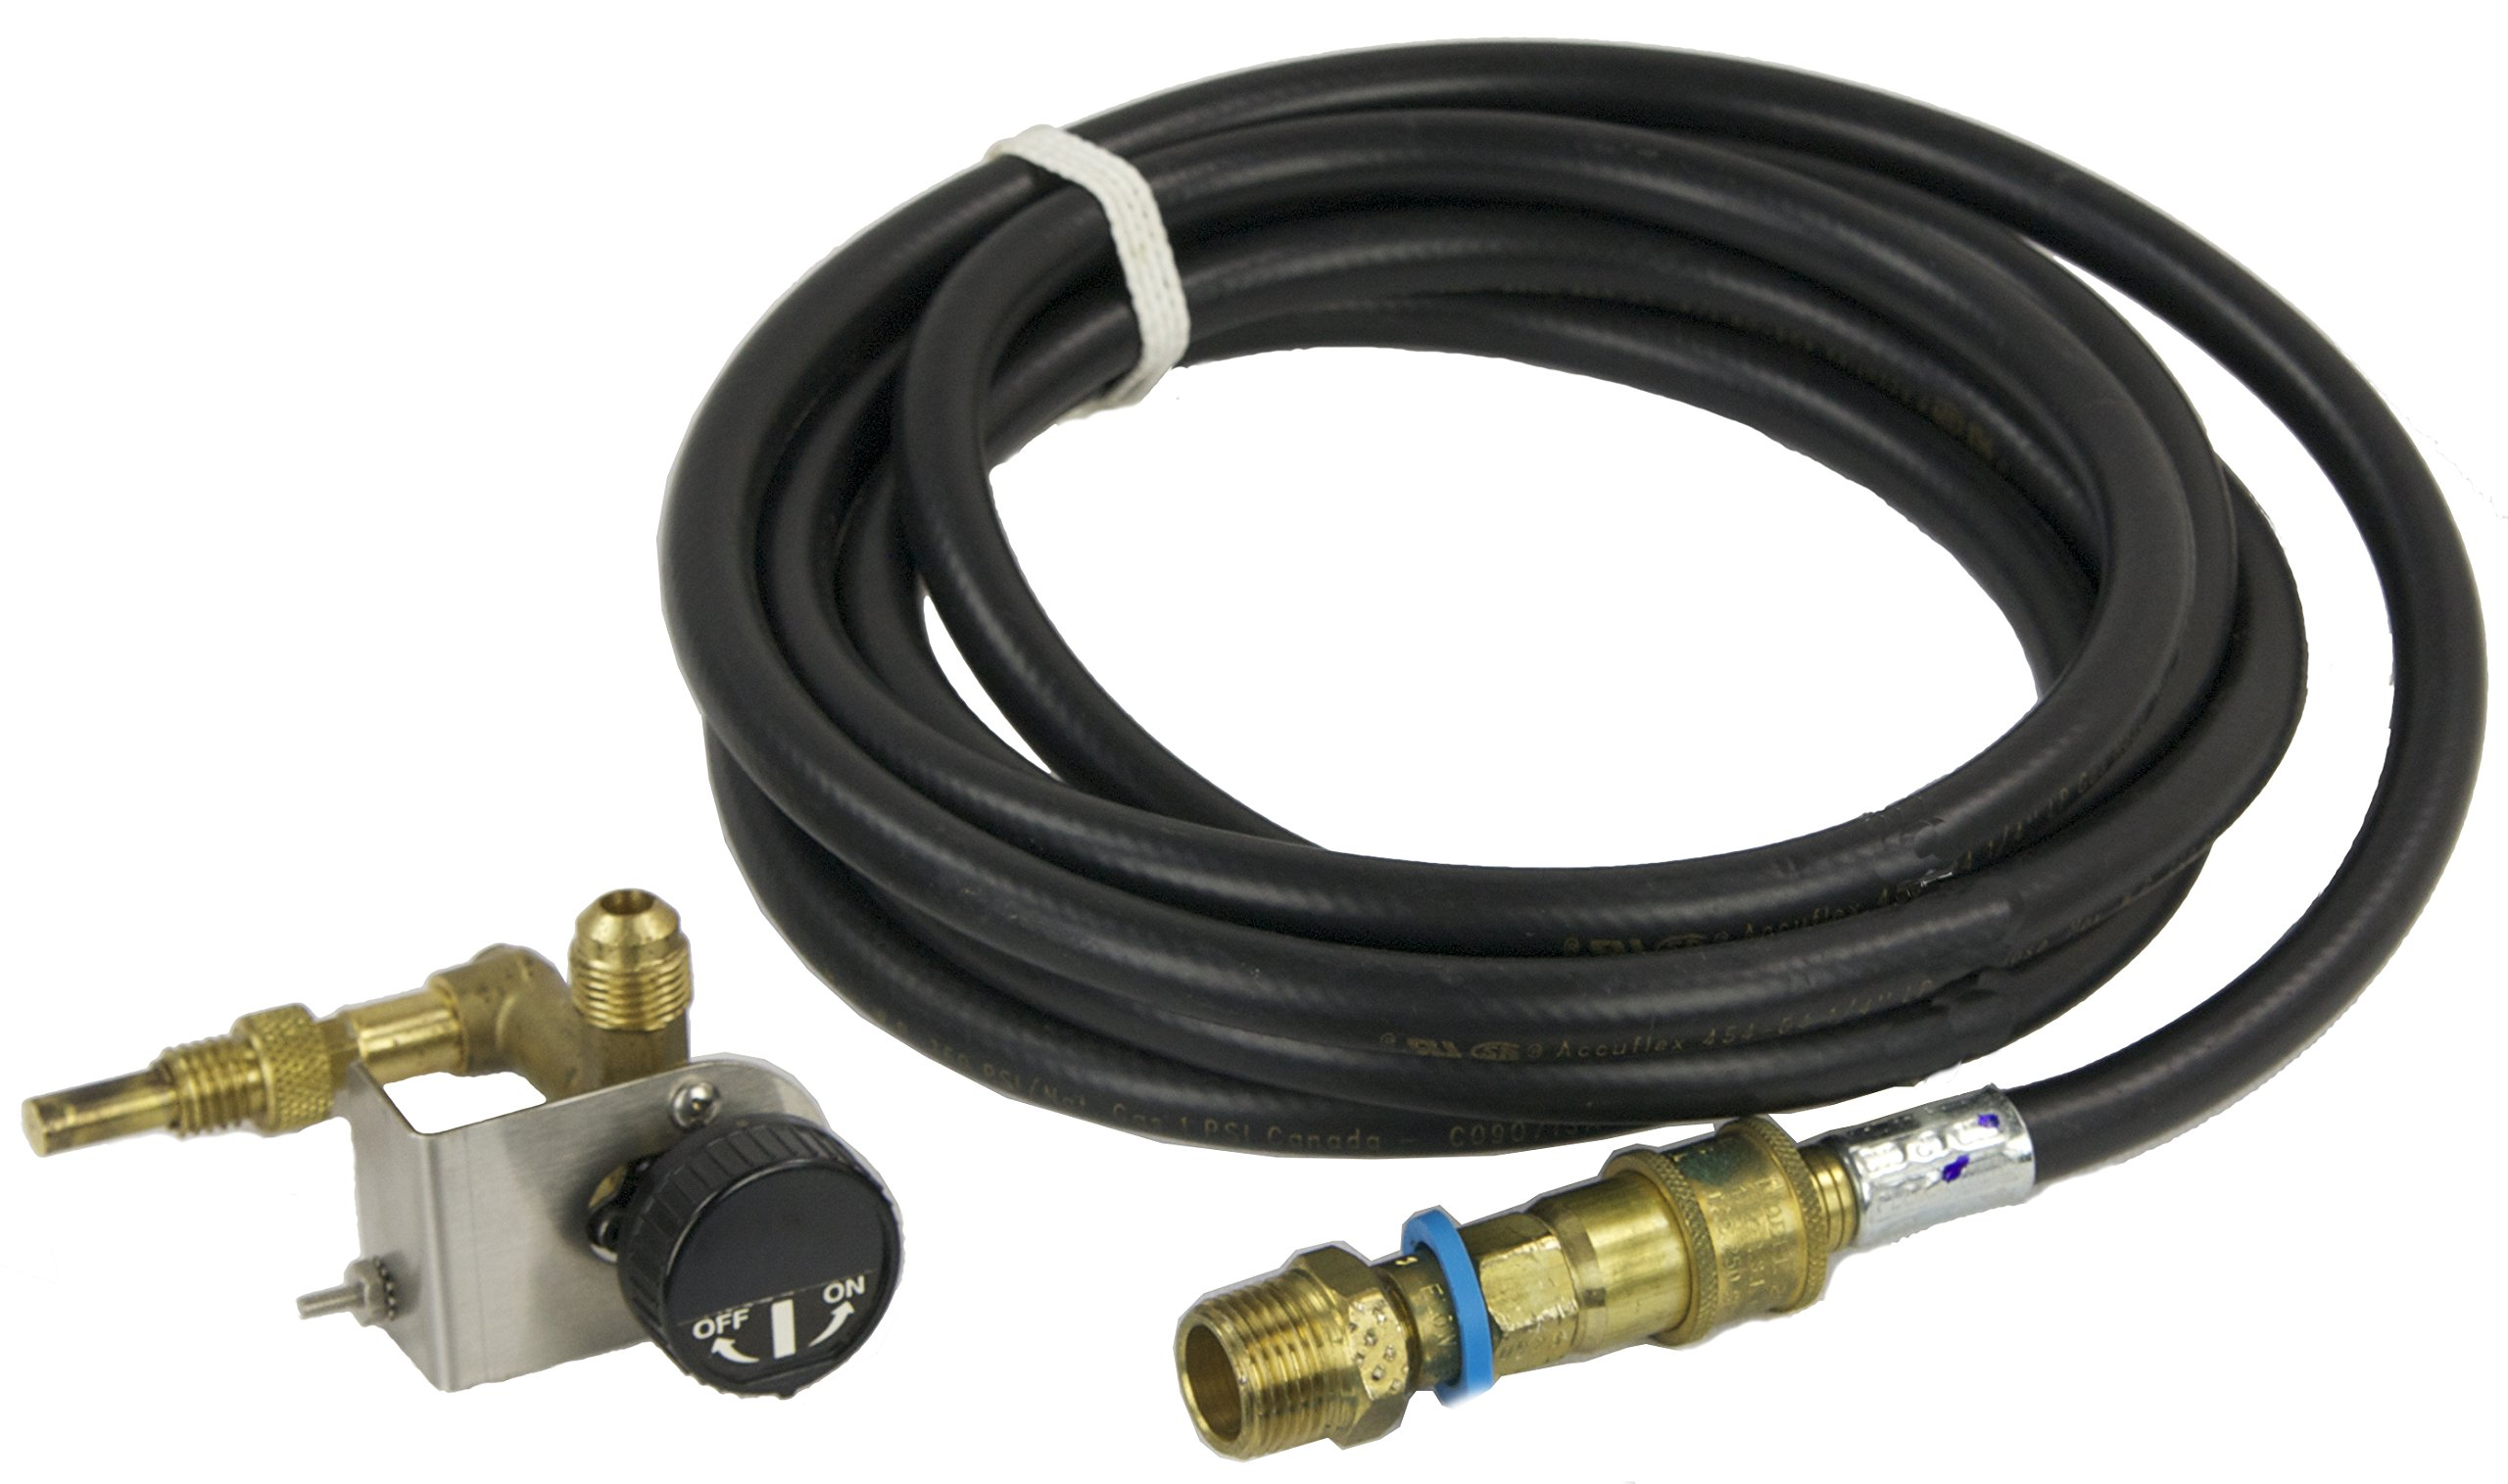 Solaire SOL-SALPC Low Pressure Propane Conversion Kit for Portable Infrared Grills by Solaire